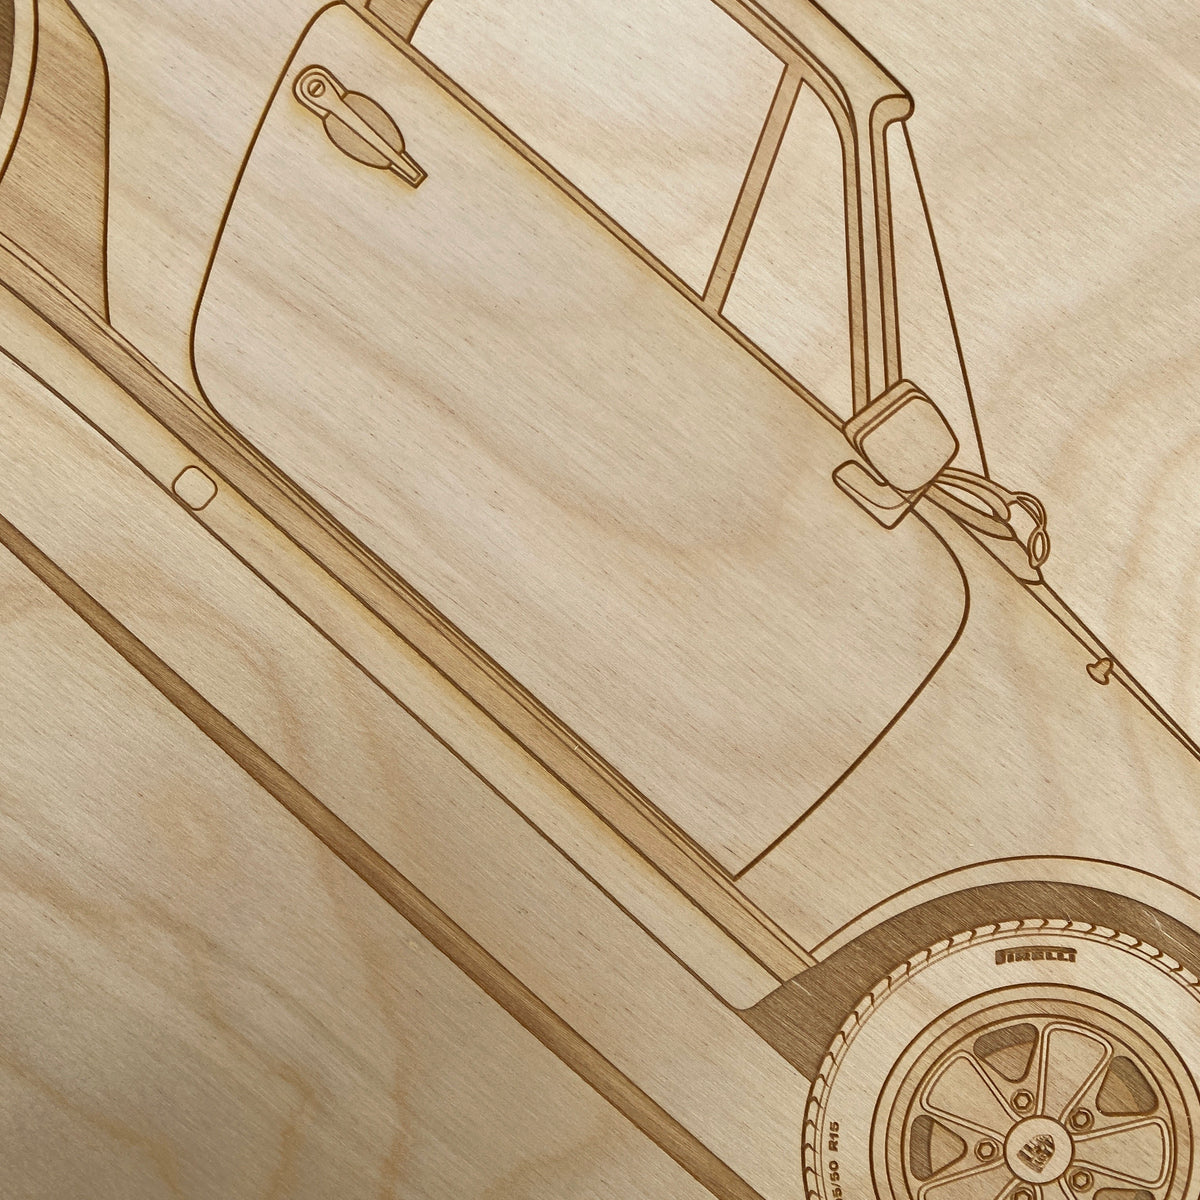 Porsche 930 Turbo Framed Wood Engraved Artwork